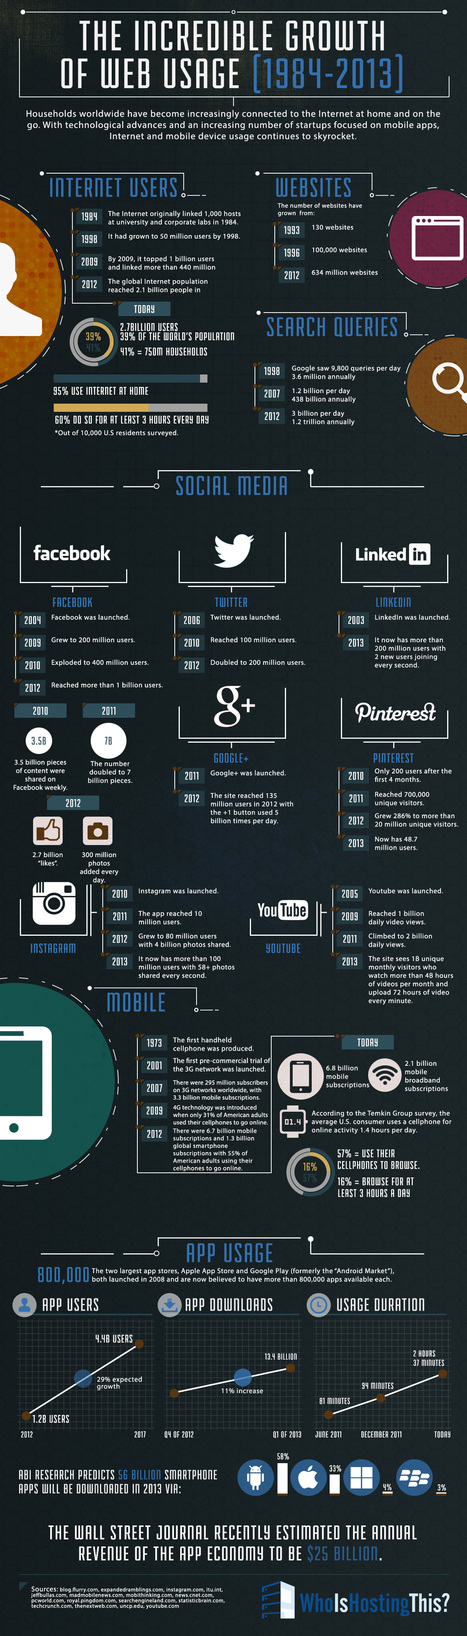 Infographic: The Incredible Growth of Web Usage [1984-2013] | COMMUNITY MANAGEMENT - CM2 | Scoop.it